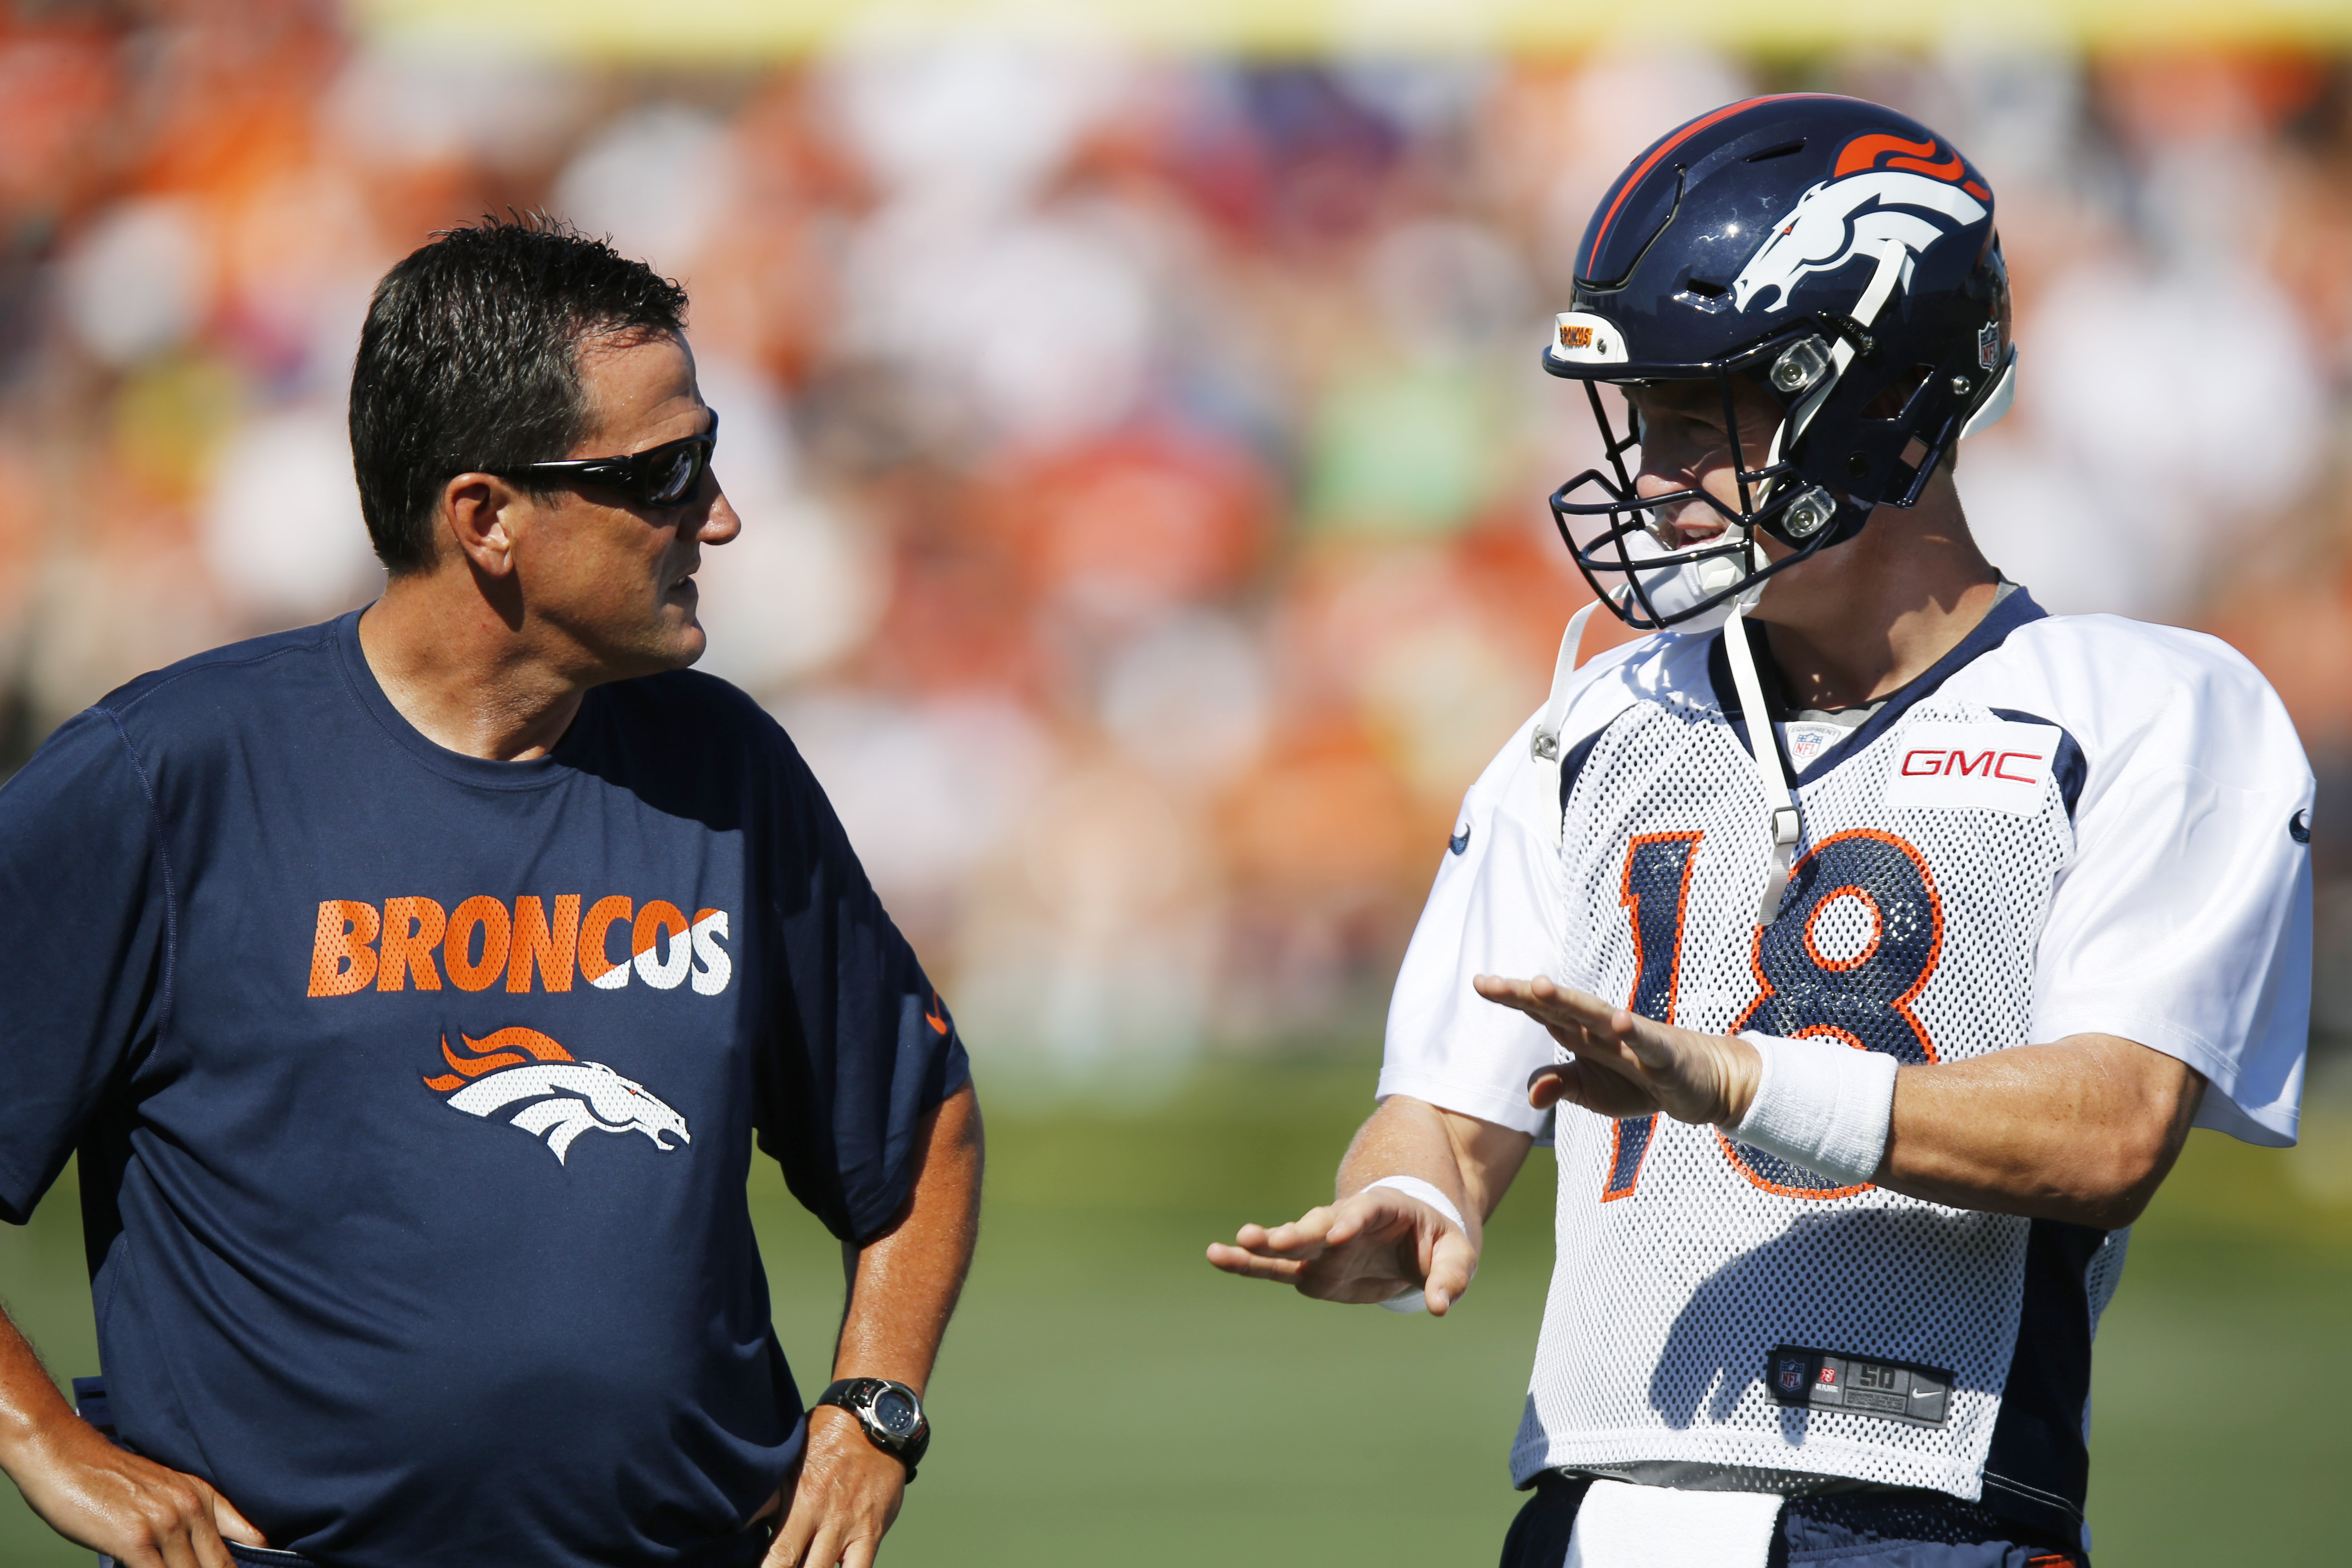 Denver Broncos quarterback Peyton Manning, right, confers with quarterbacks coach Greg Knapp at the team's NFL football training camp Friday, July 31, 2015, in Englewood, Colo. (AP Photo/David Zalubowski)